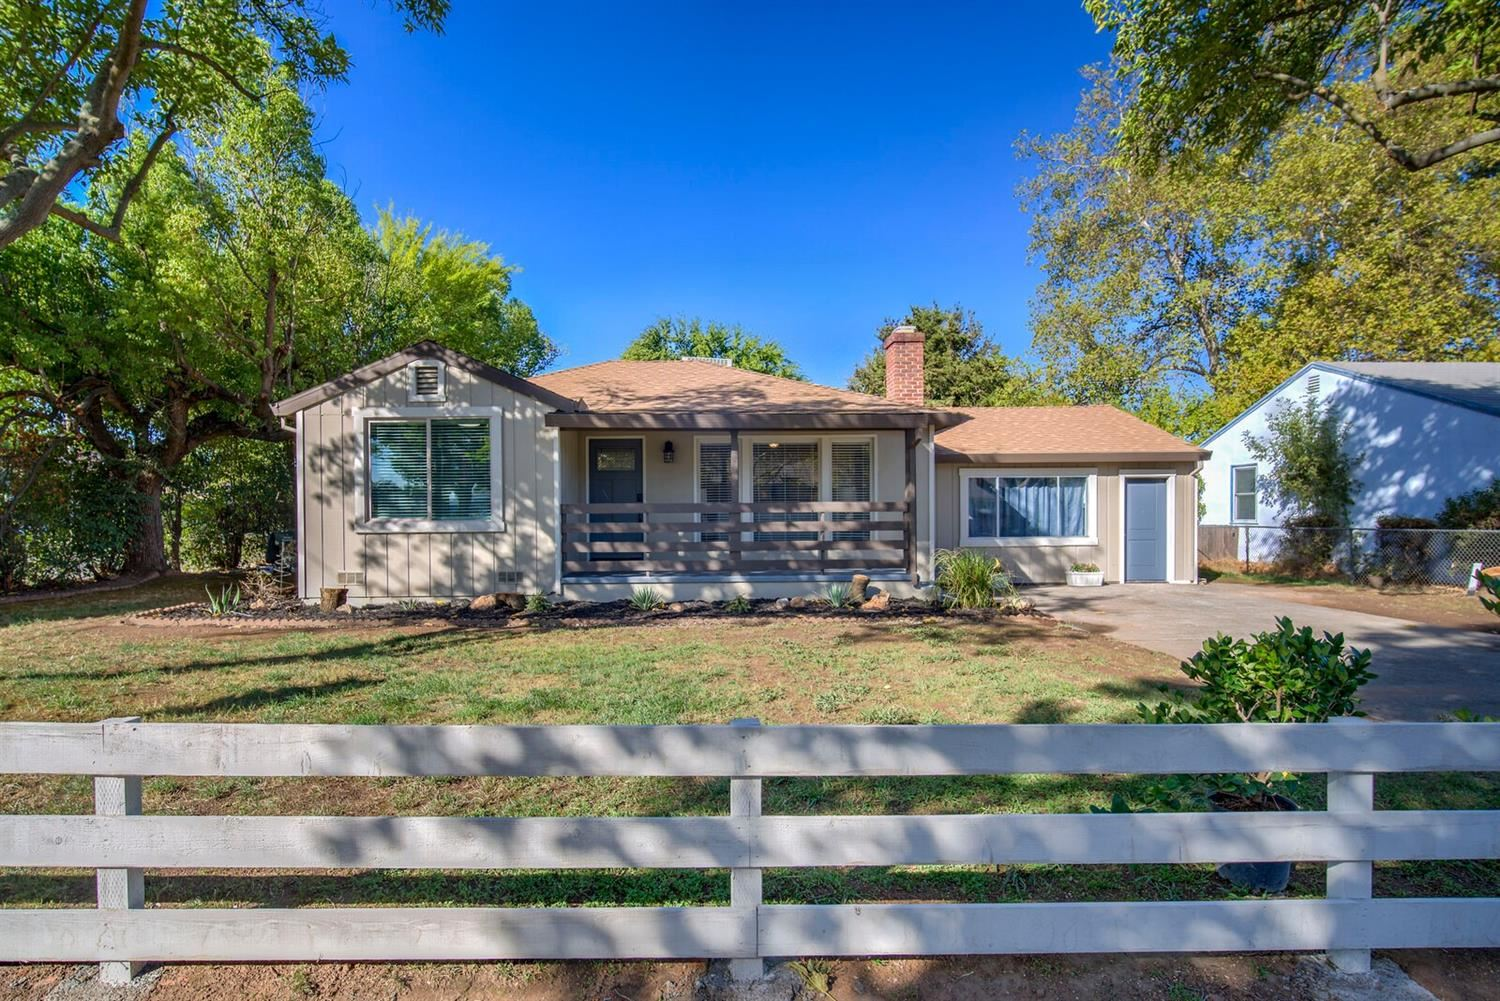 Photo of 2501 Roslyn Way, Sacramento, CA 95821 (MLS # 20063940)